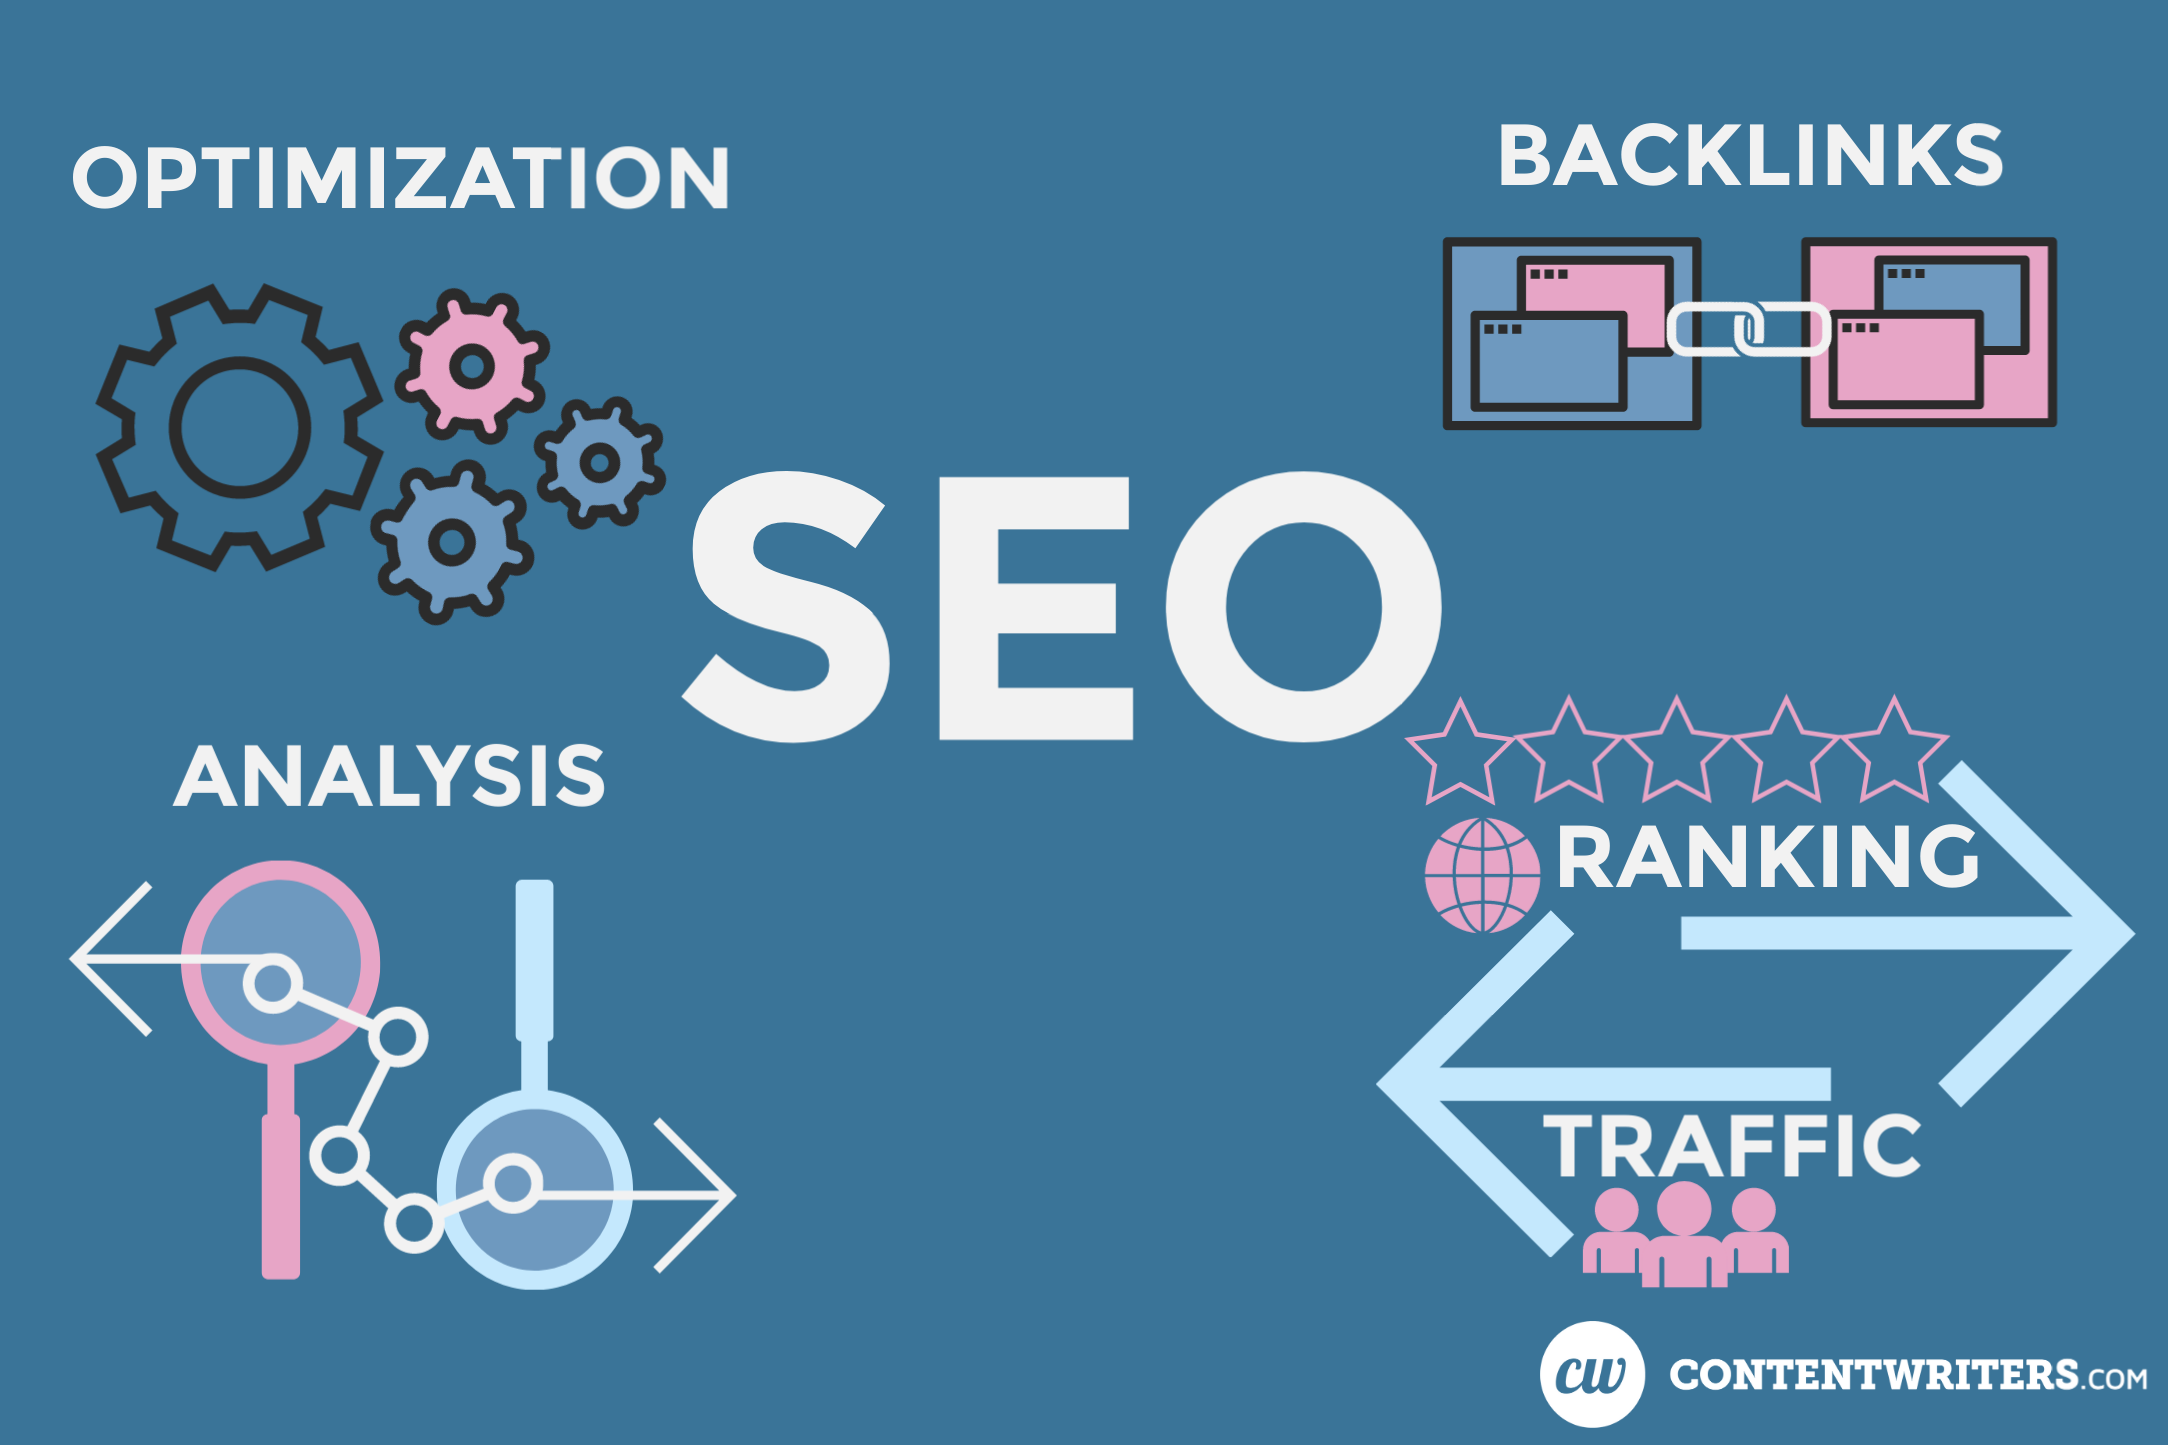 SEO Optimization Analysis Backlinks Ranking Traffic ContentWriters 1